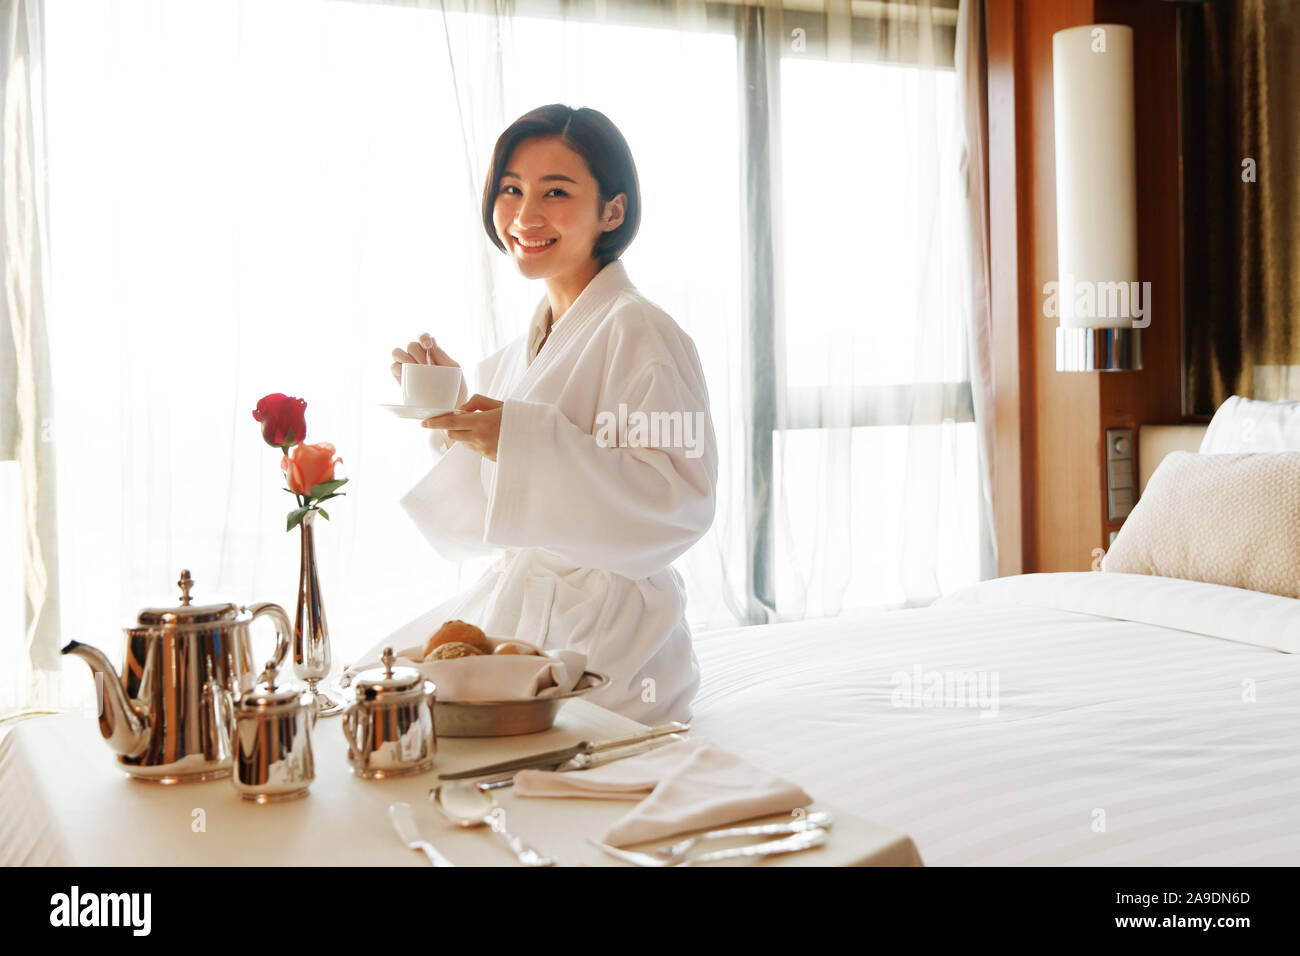 The Young Woman In A Hotel Room For Coffee Stock Photo Alamy